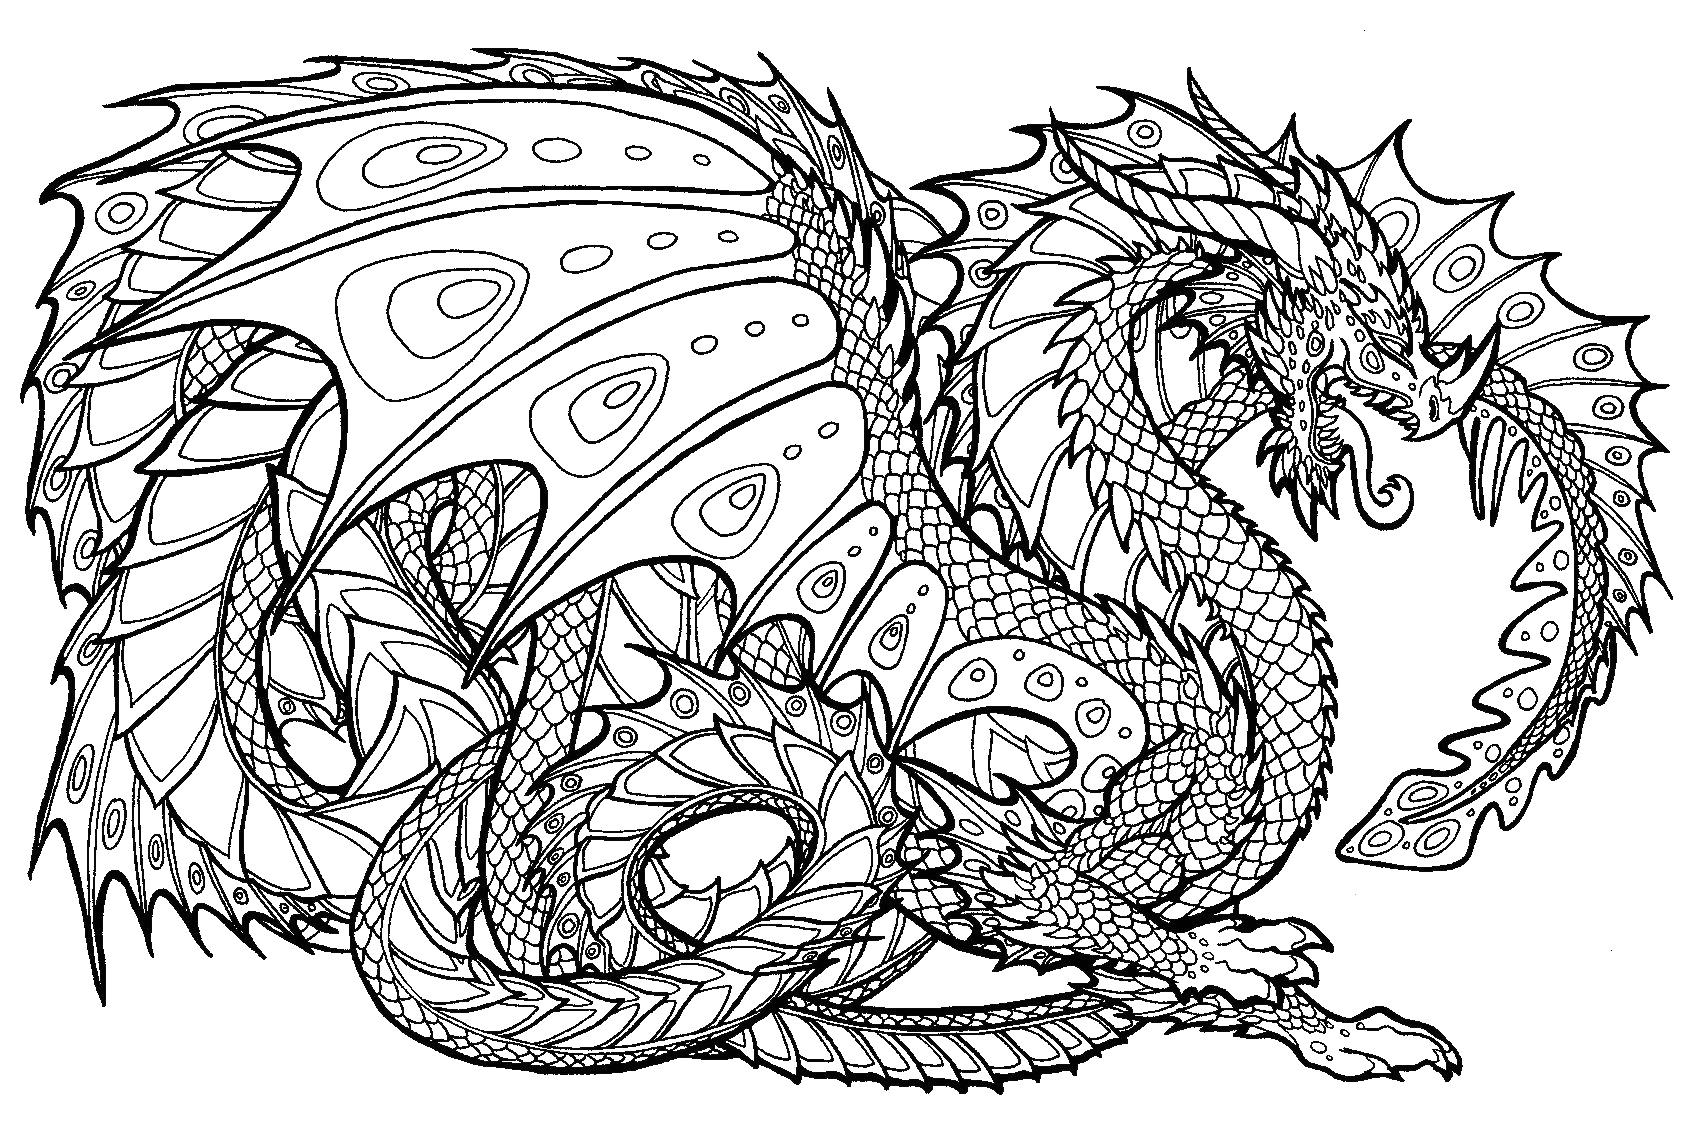 Free Printable Dragon Coloring Pages for Adults Dragon Coloring Pages for Adults Best Coloring Pages for